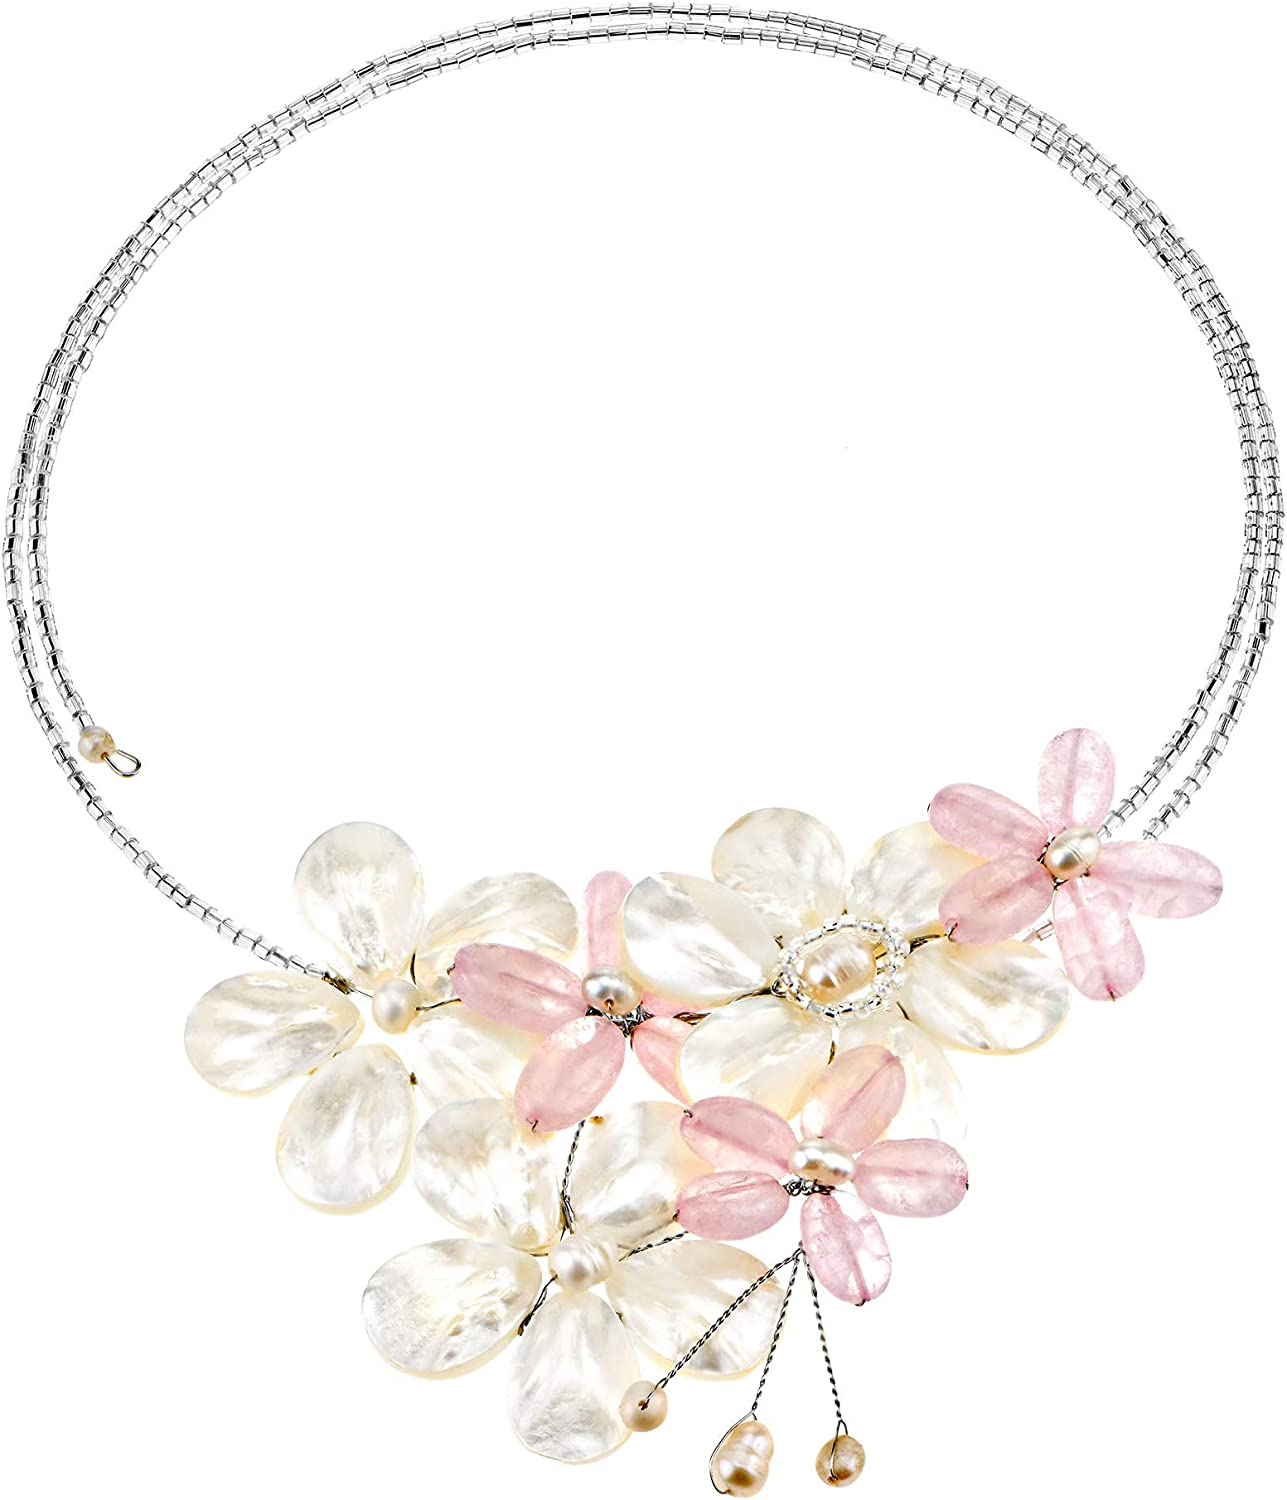 AeraVida Stunning Elegance Pink Glass and White Mother of Pearl Floral Choker Wrap Necklace